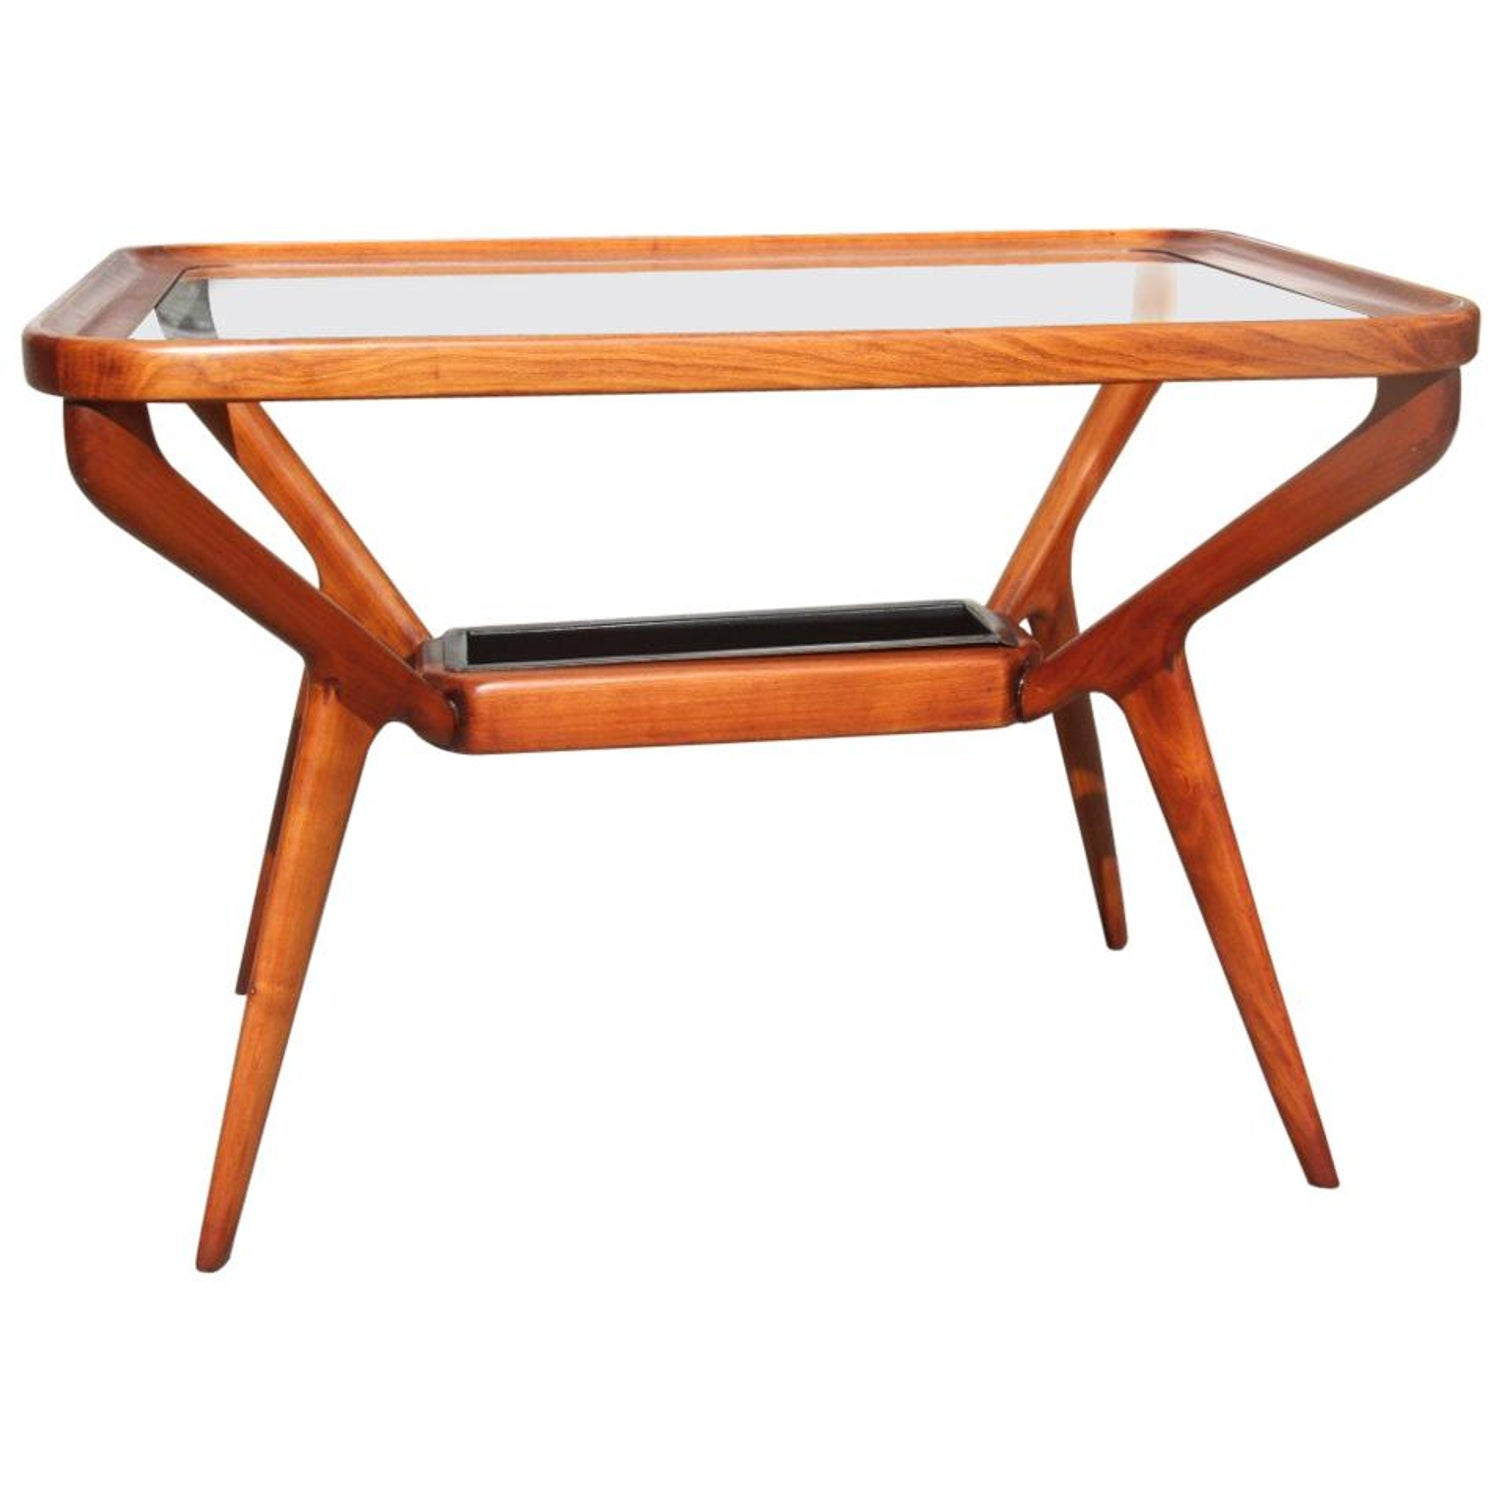 midcentury coffee table cherry wood rectangular form glass top master end tables with dassi for canadian furniture manufacturers gold and made from pallet oak finish living room